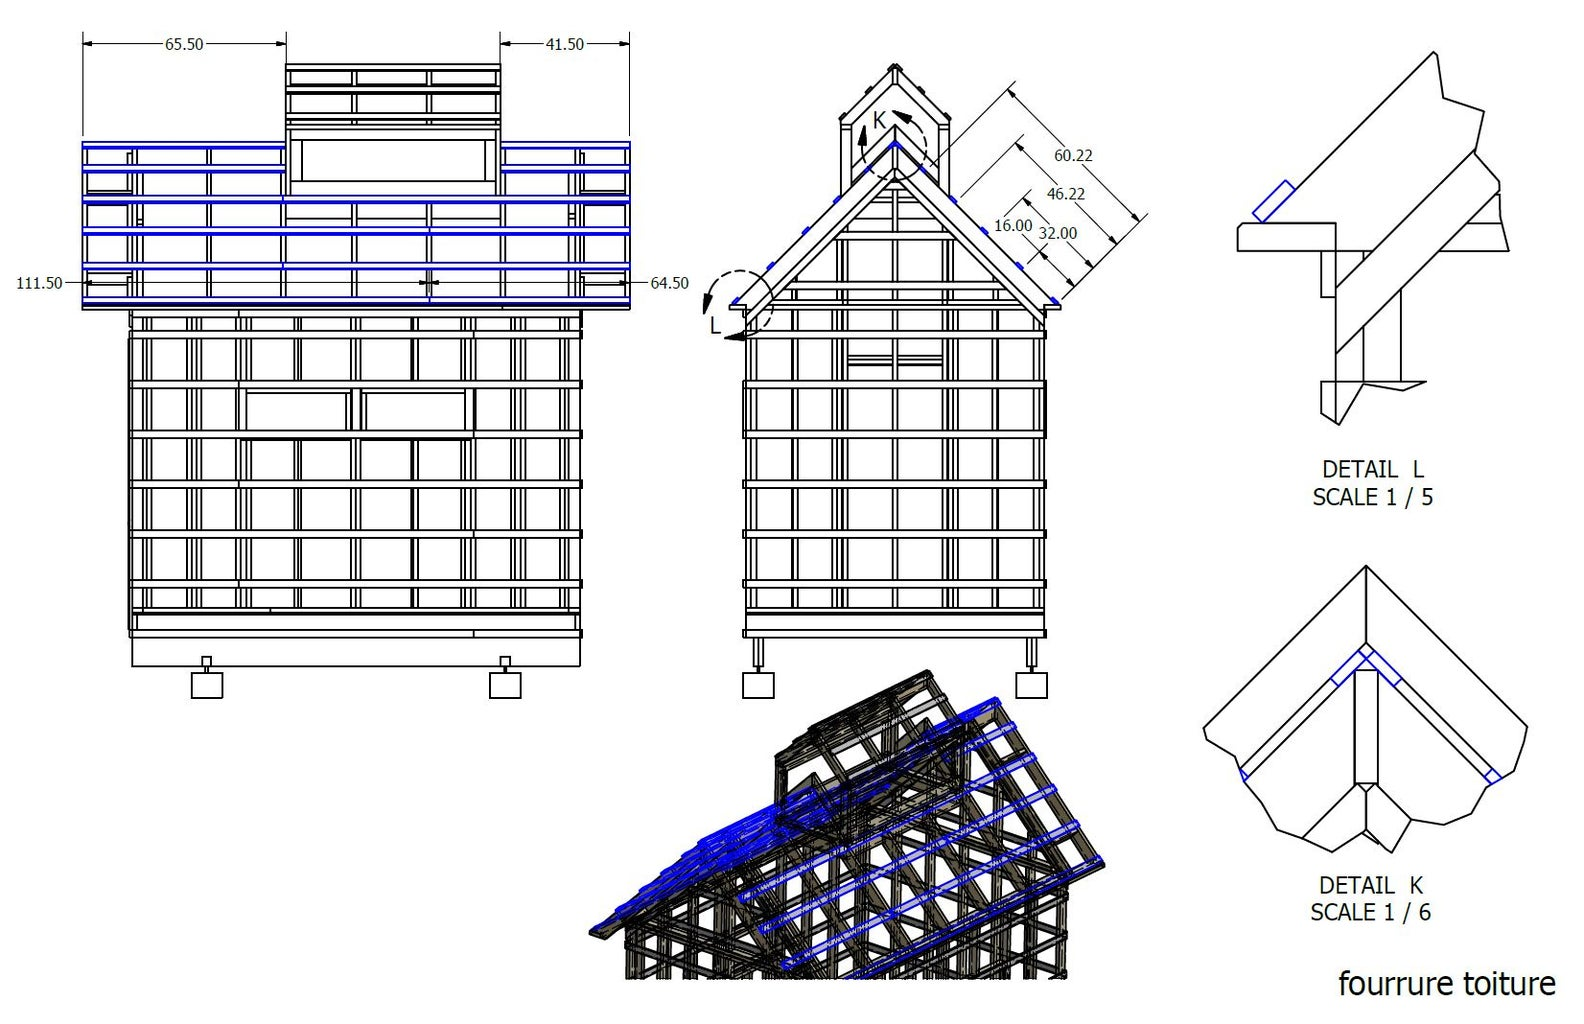 Roof Forrens